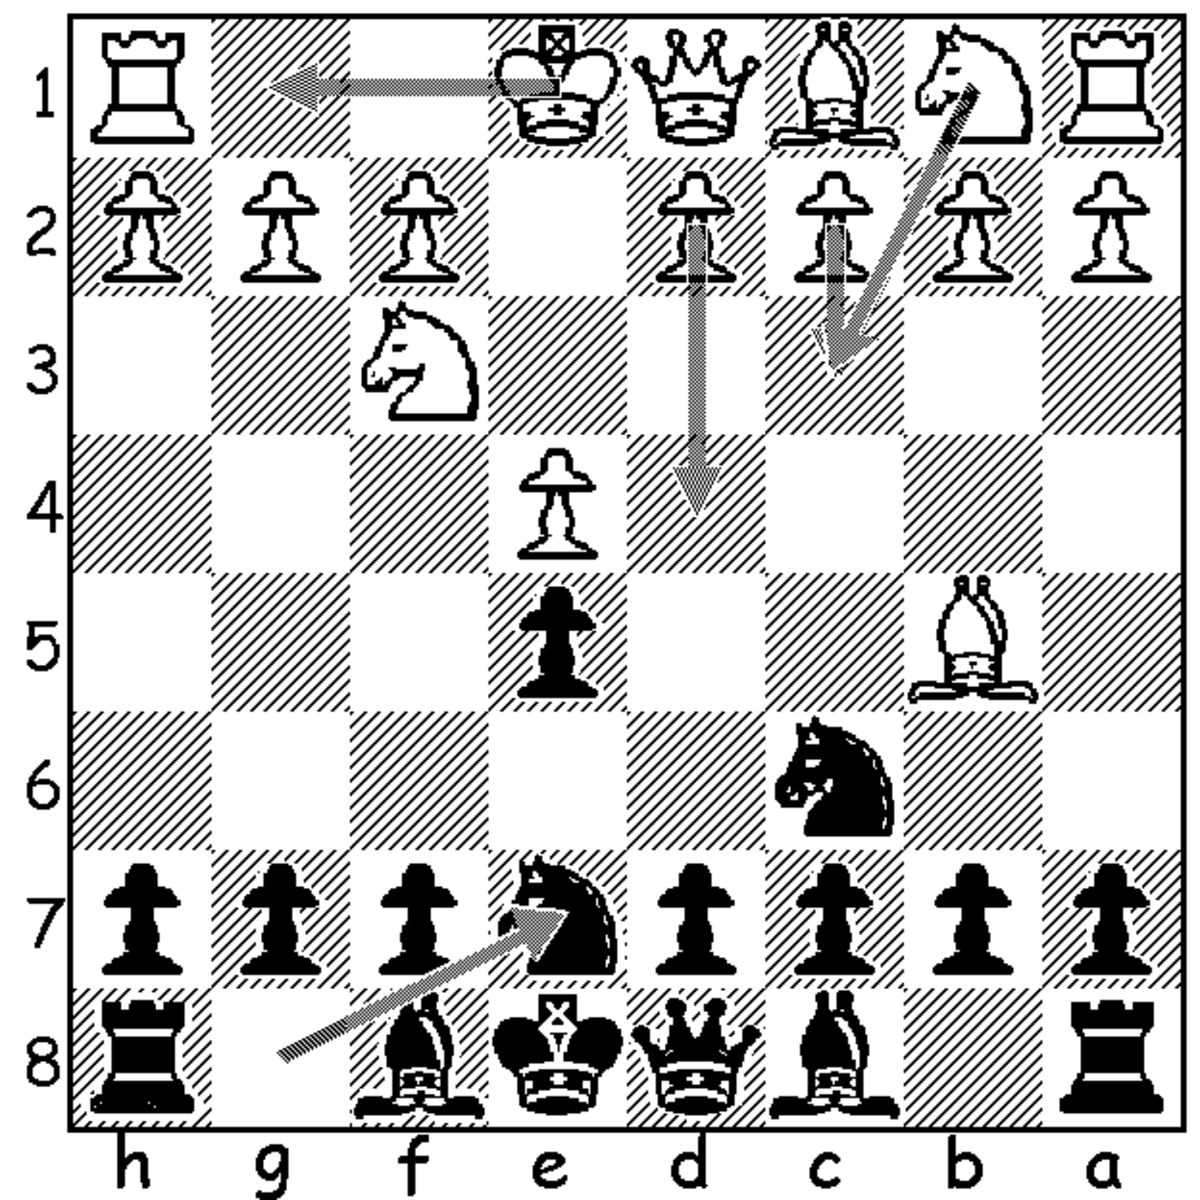 Chess Openings: Trying to Learn the Ruy Lopez as Black? Try Using the Underappreciated Cozio Defense (3...Nge7)